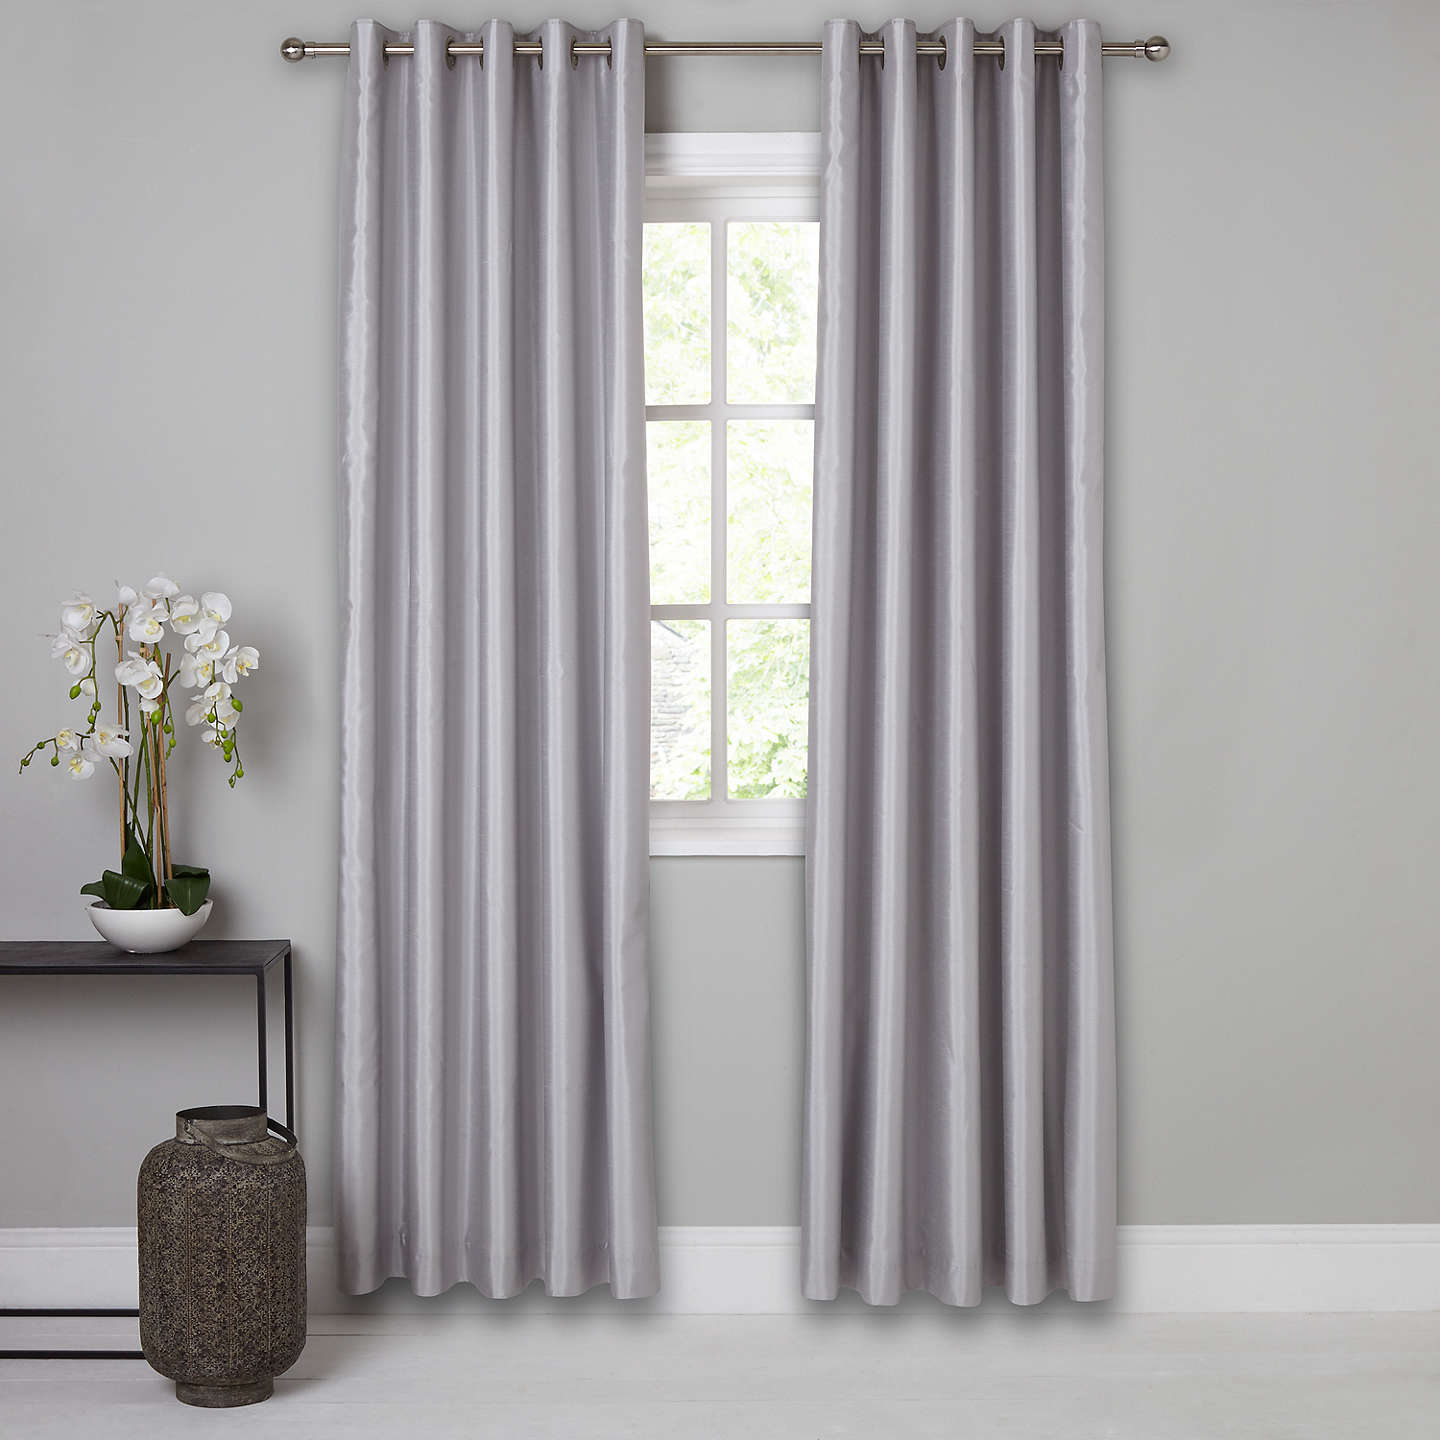 BuyJohn Lewis Faux Silk Pair Blackout Lined Eyelet Curtains, Blue Grey, W167 x Drop 137cm Online at johnlewis.com